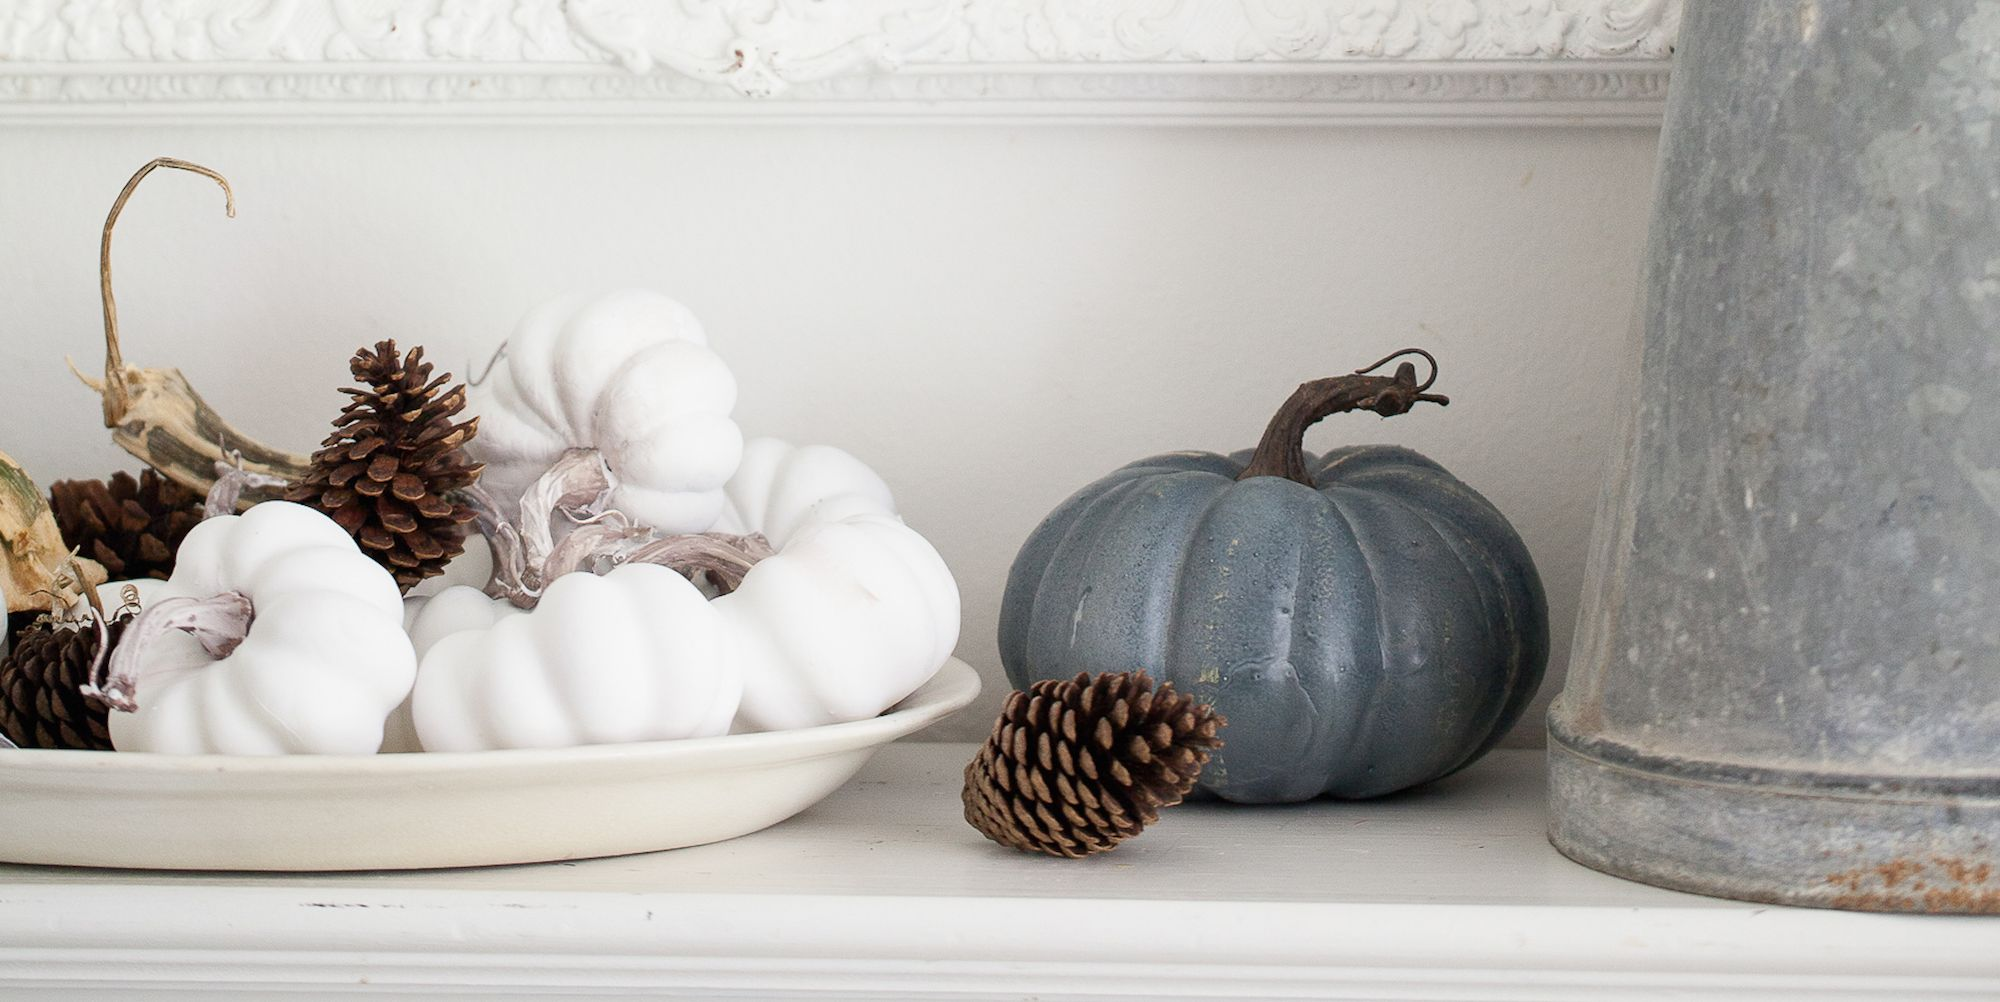 22 Stylish Fall Decorations That Create Beautiful Seasonal Vignettes